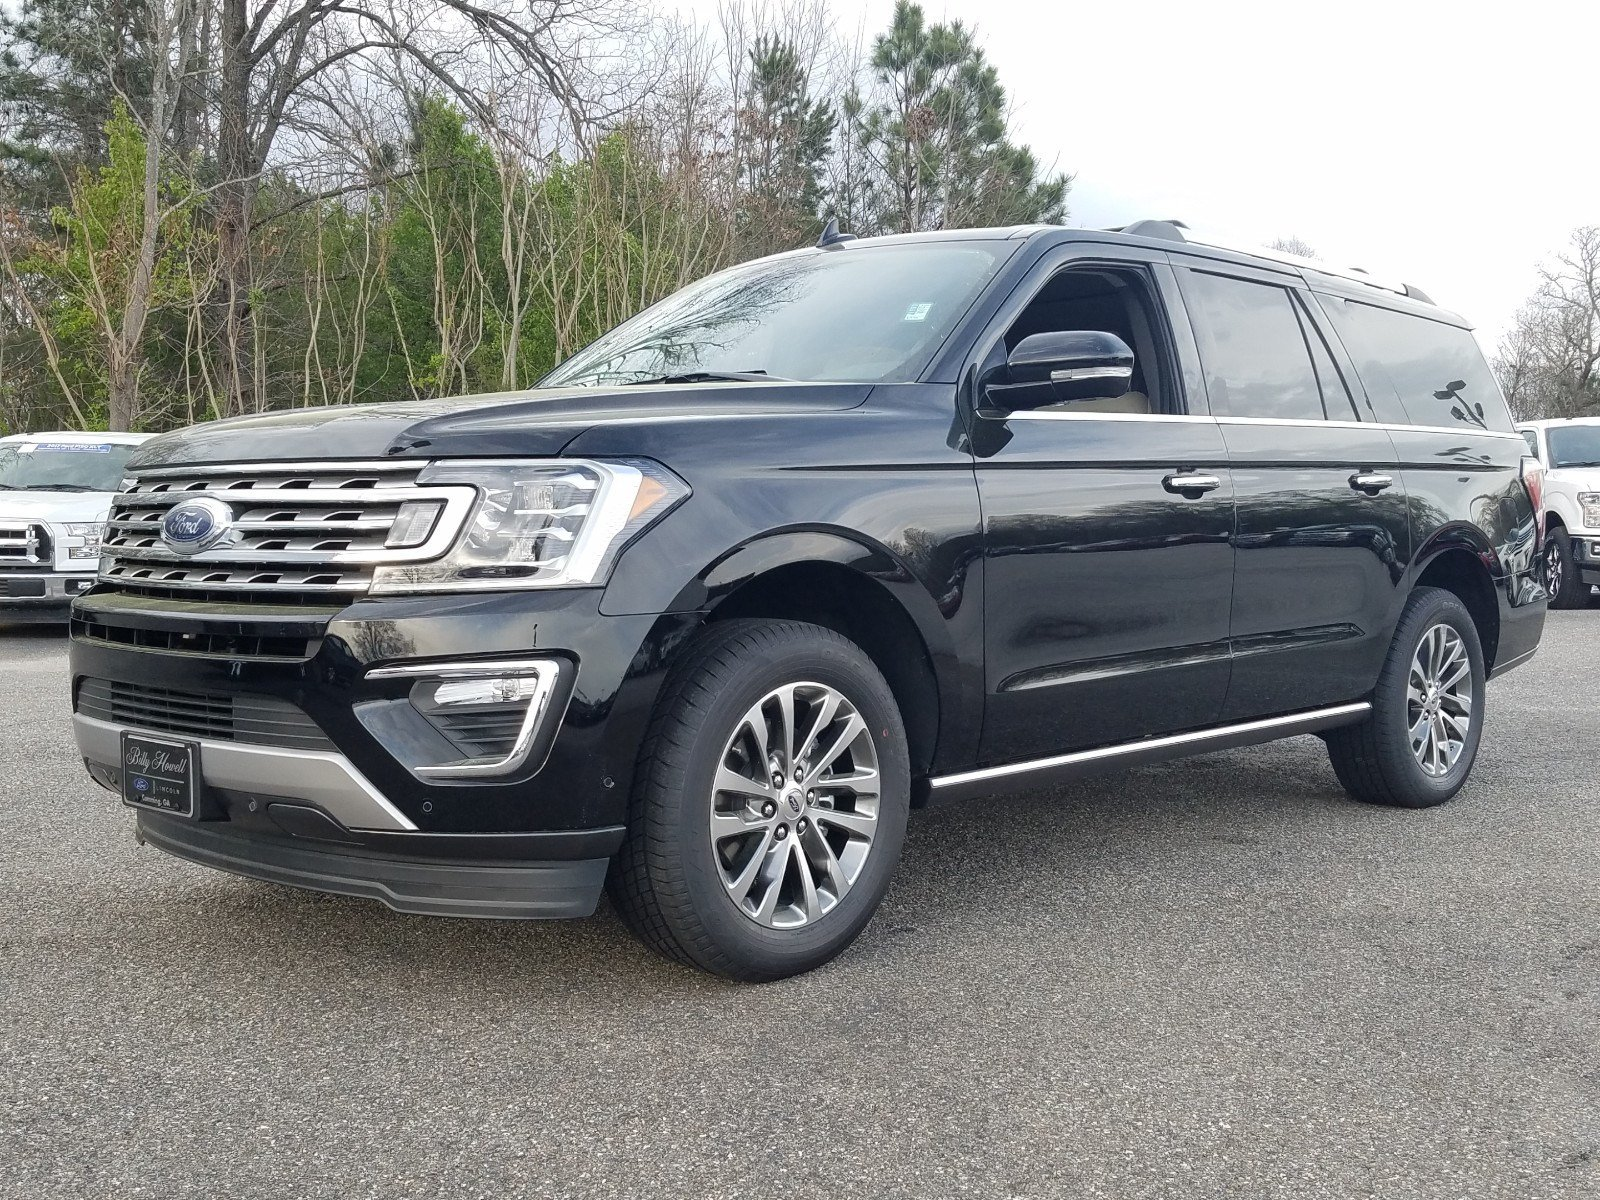 2018 Ford Expedition Limited 3.5L EcoBoost V6 Engine with Auto Start-Stop Technology SUV RWD 4 Door Automatic